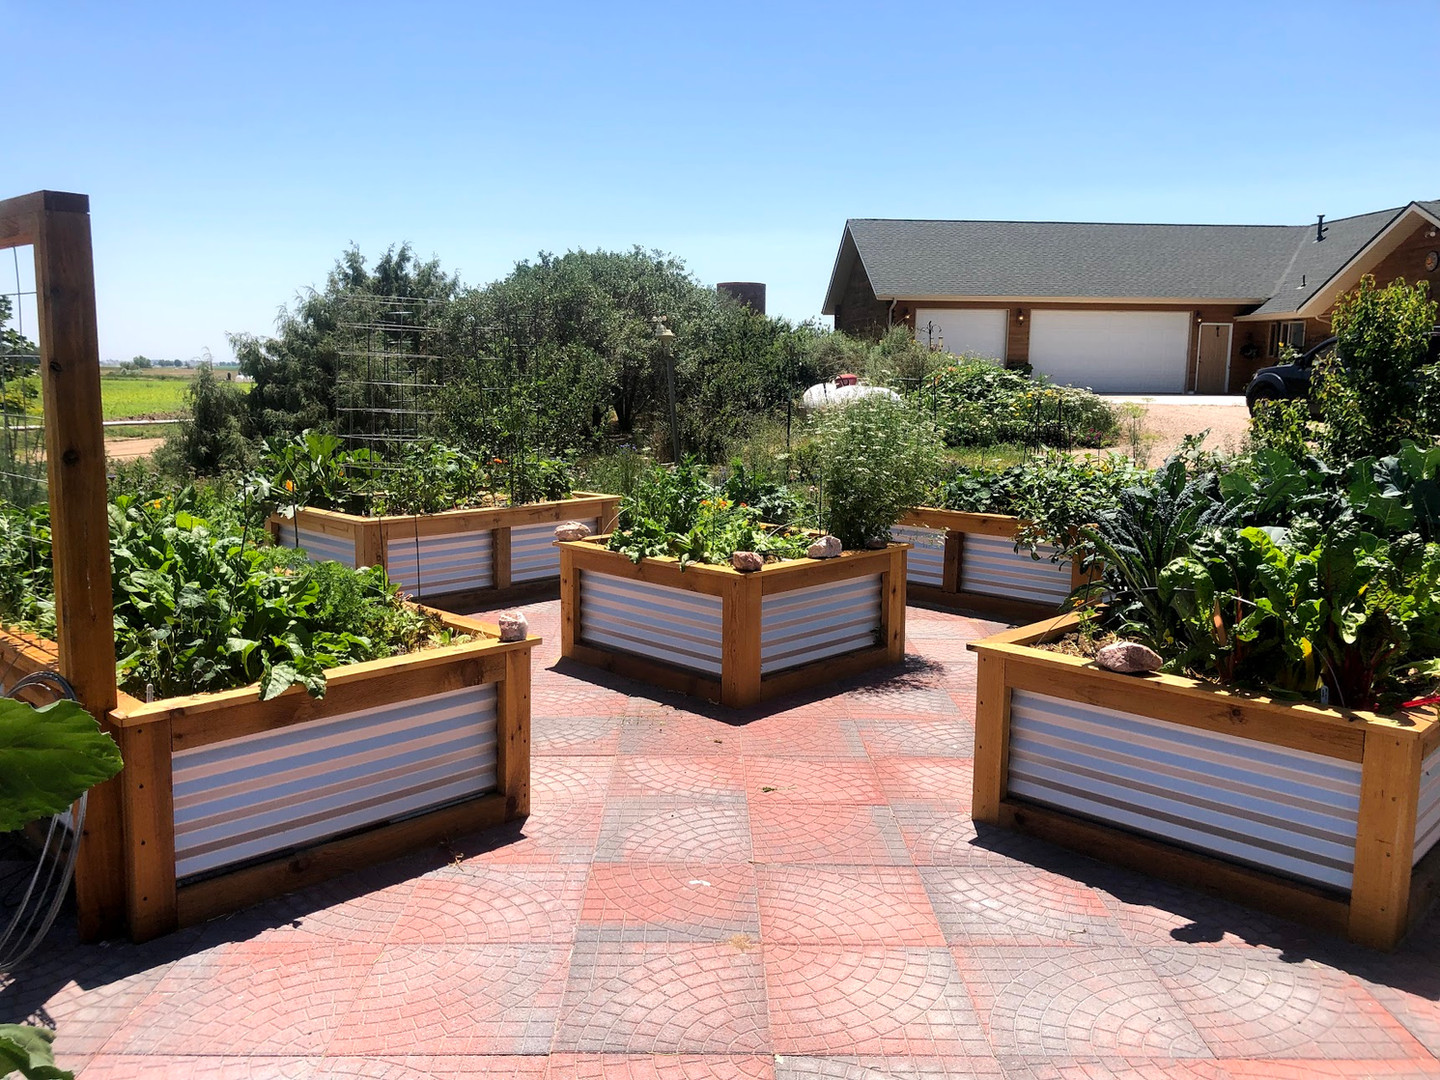 fort collins garden installation raised beds, planting plan and coaching